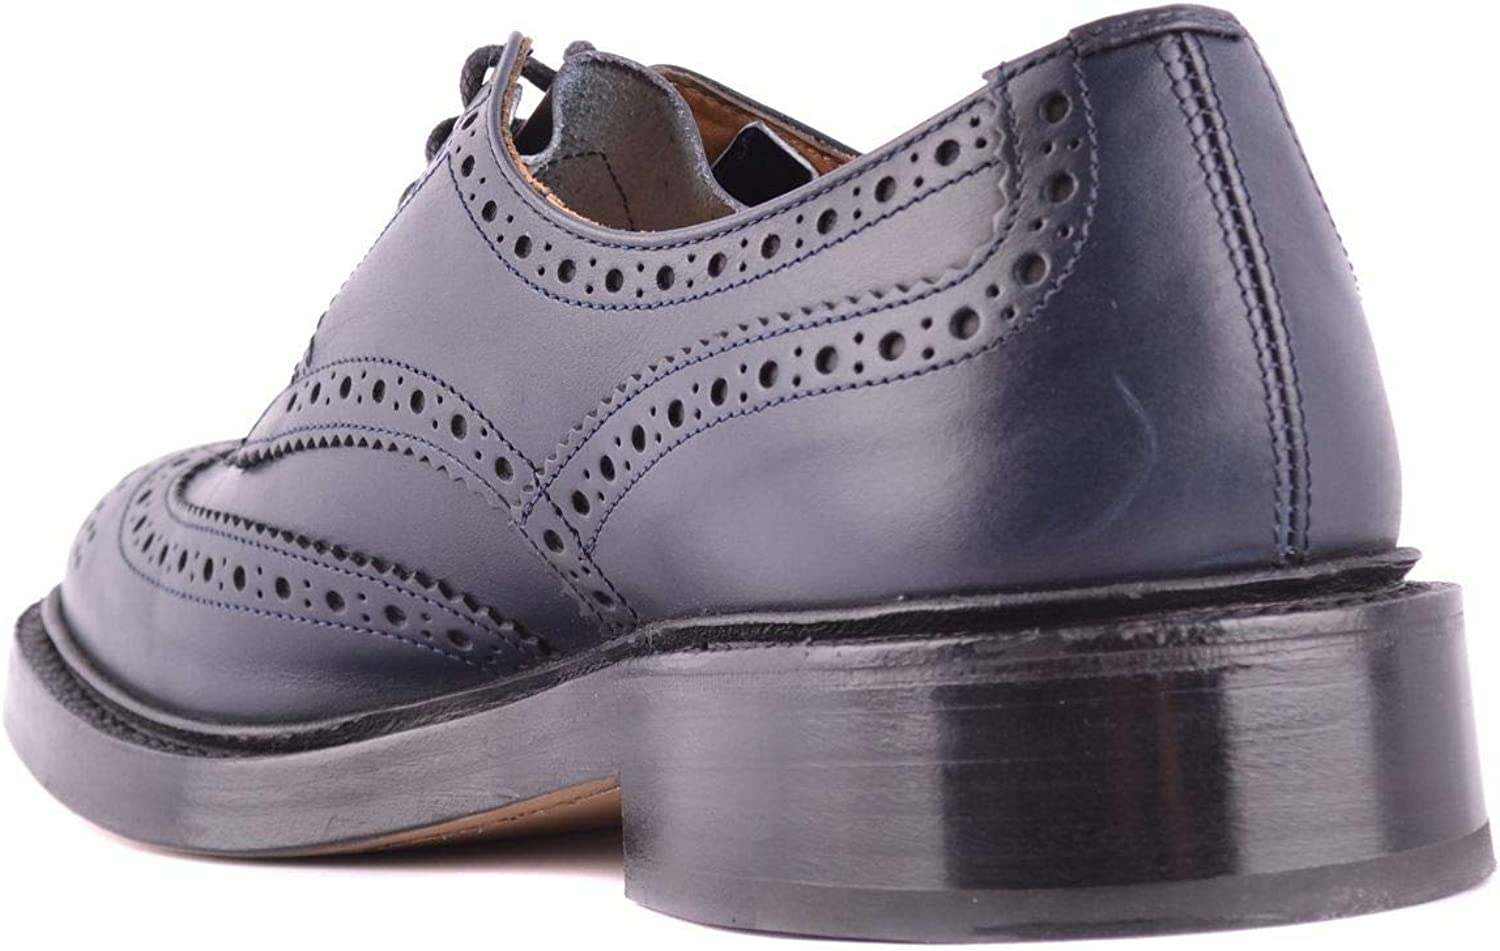 Chaussures Bleu Luxury Homme Tricker's MCBI32628 Fashion À